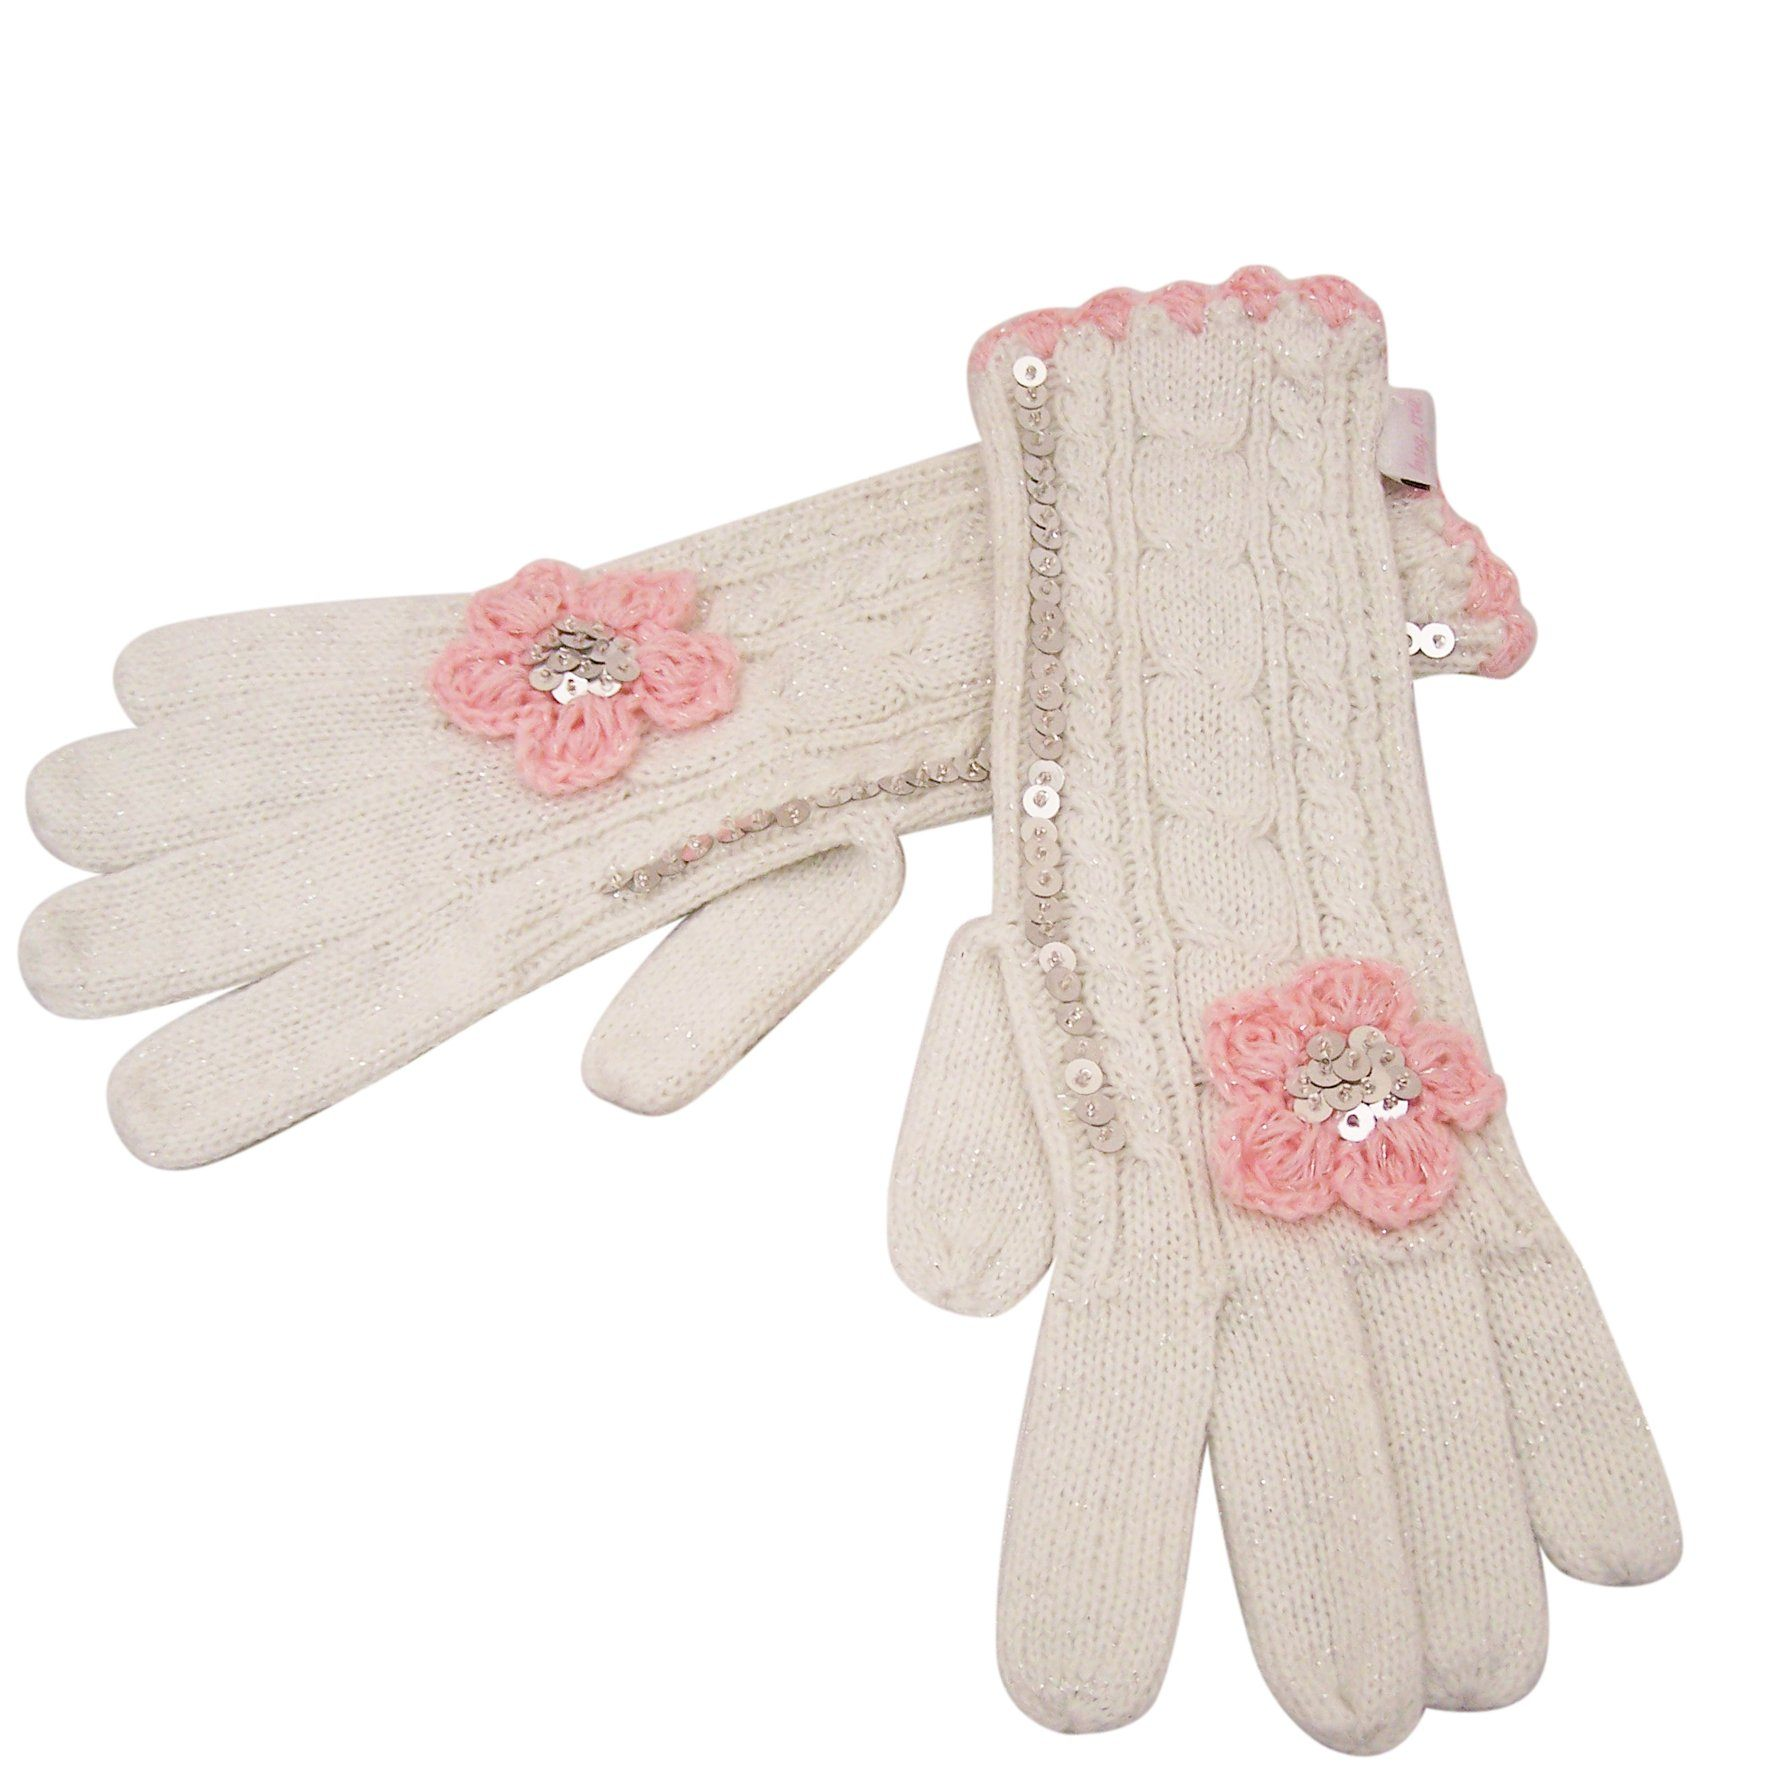 Knitted Flower Gloves Cream with Pink - BouChic